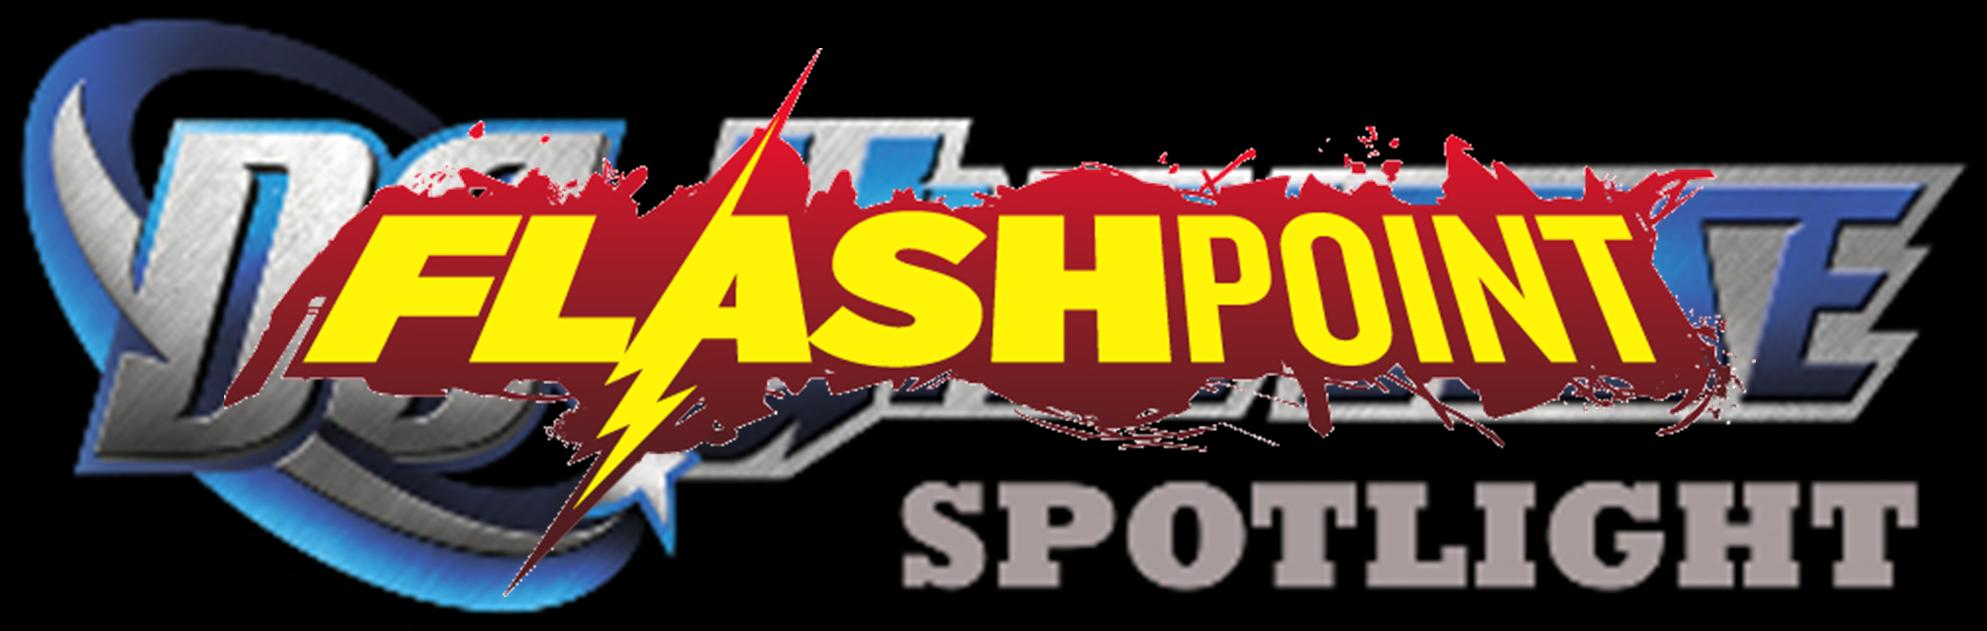 Flashpoint Spotlight